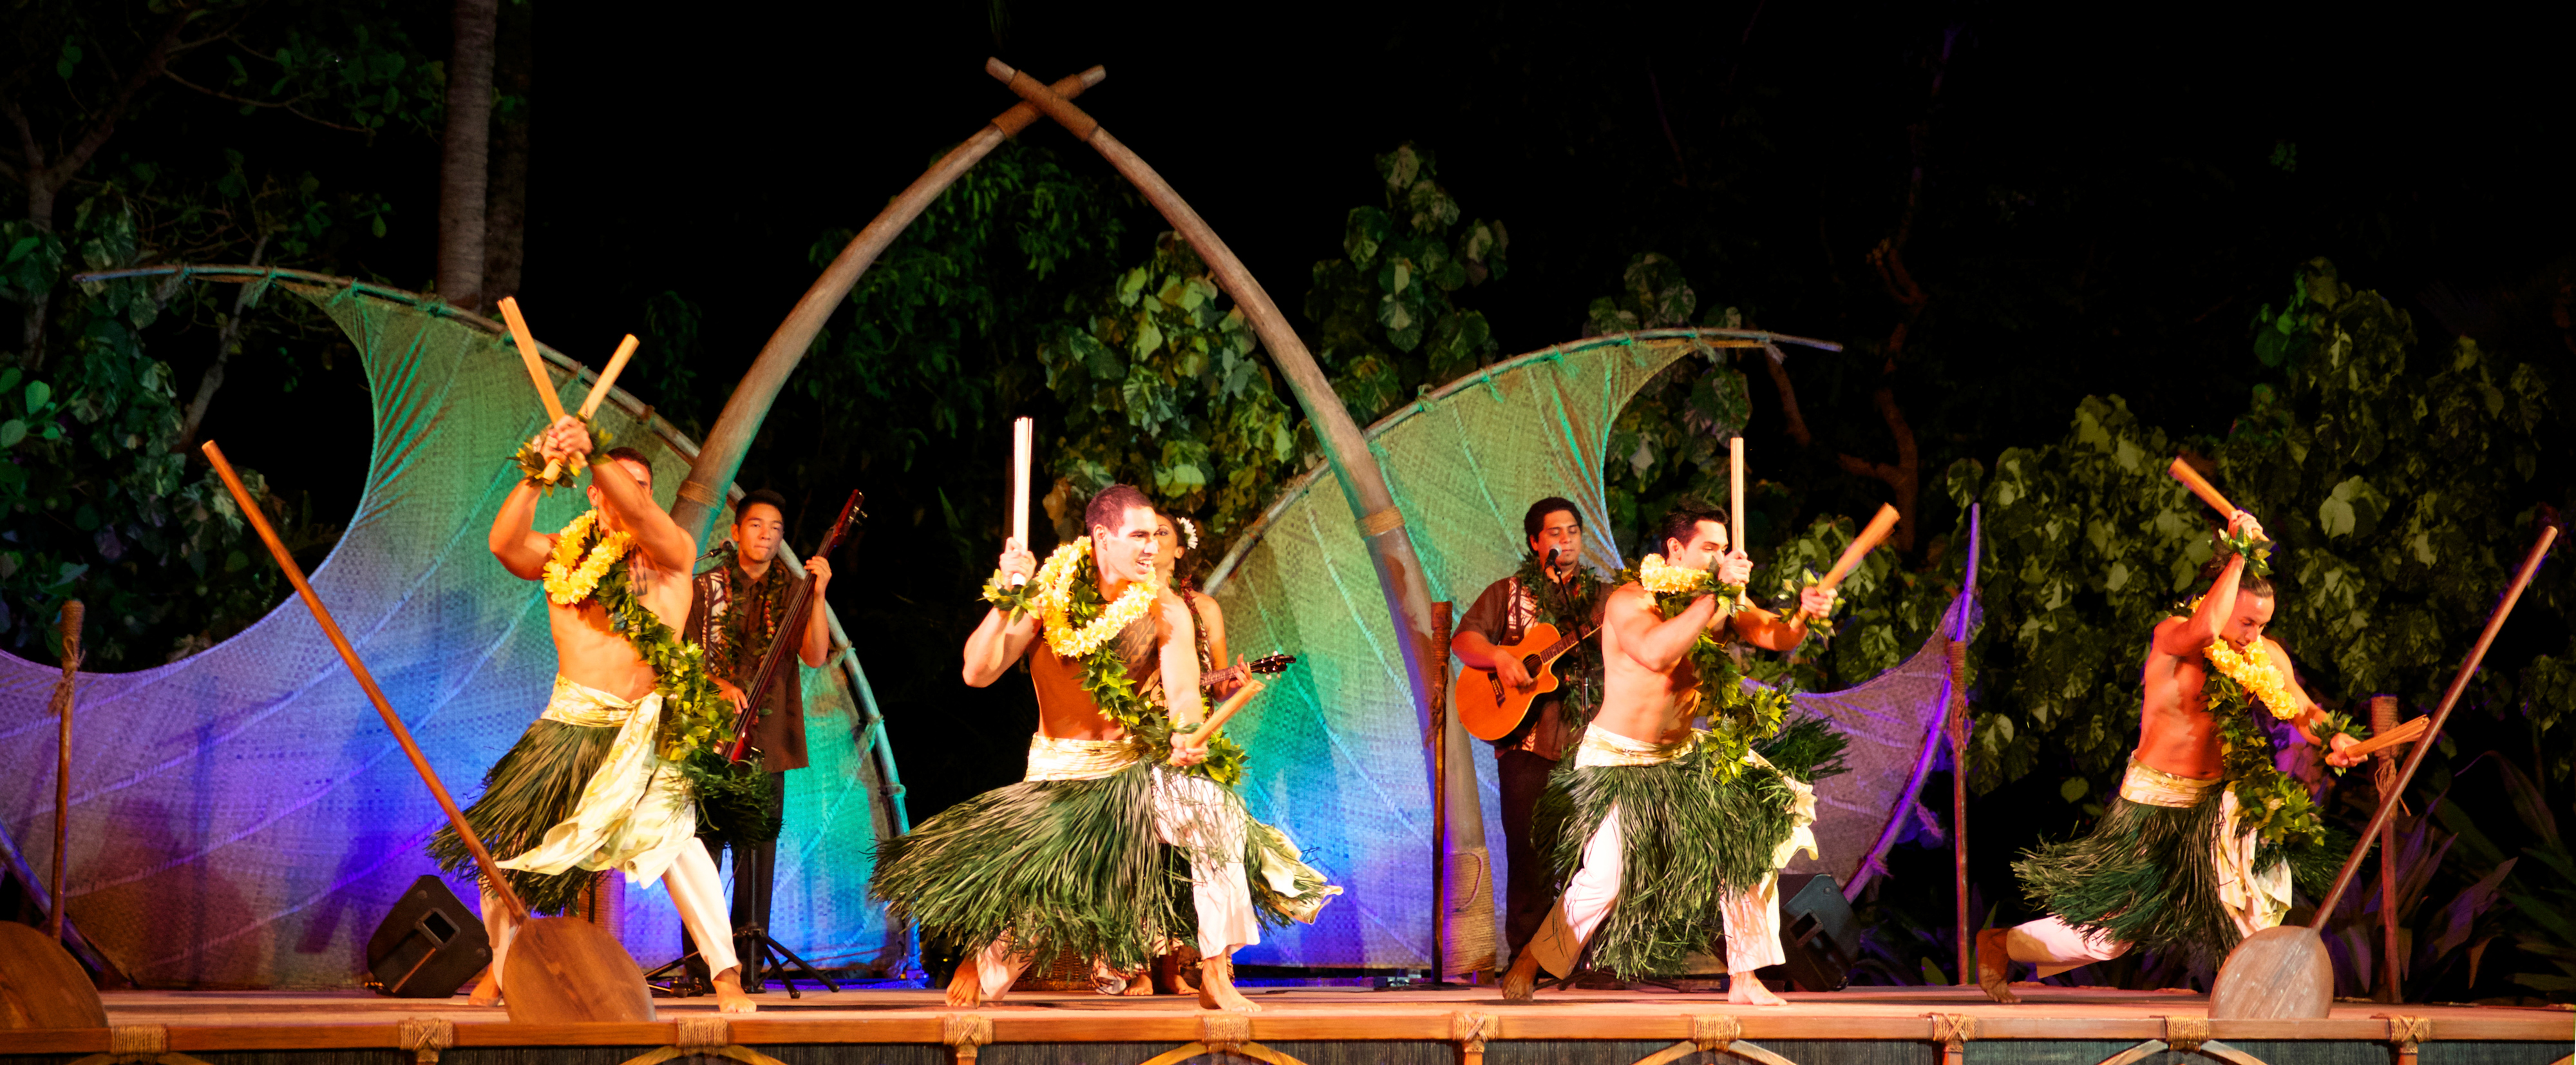 Four men in grass skirts perform onstage with kālaʻau rhythm sticks while musicians play behind them